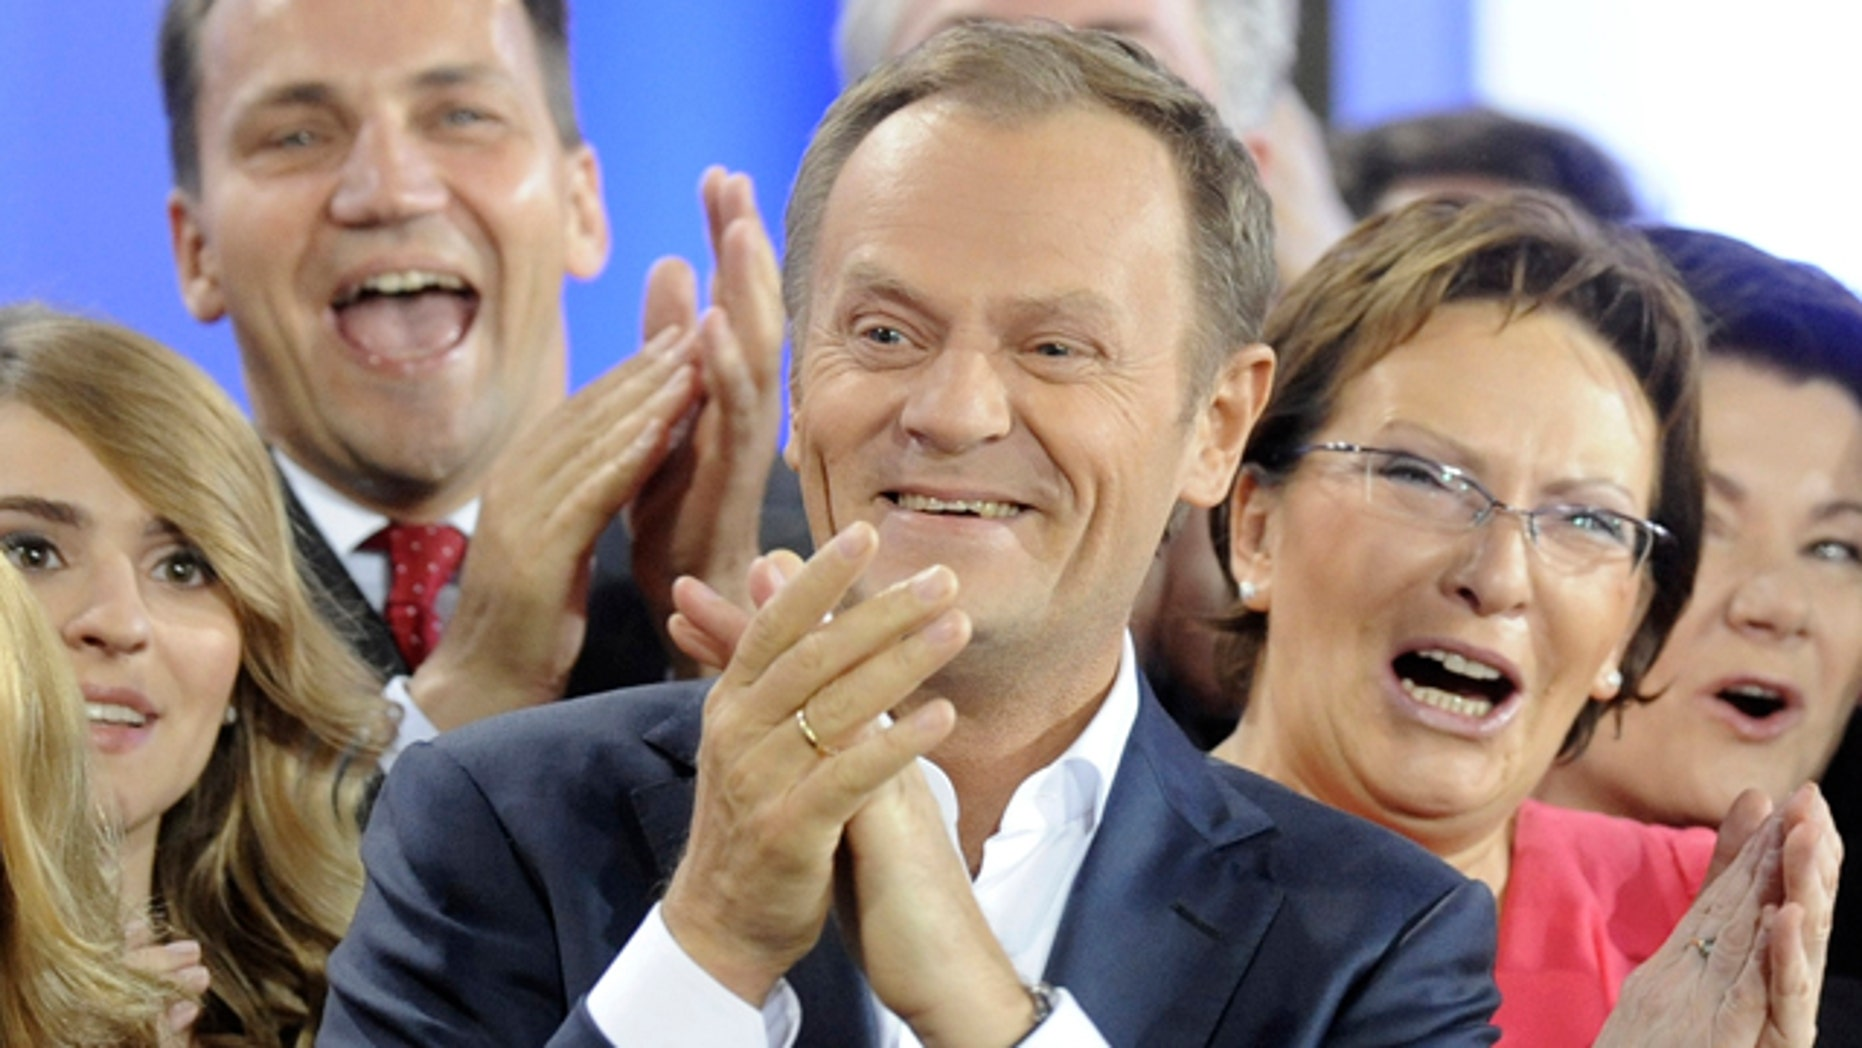 Oct. 9: Prime Minister Donald Tusk, center, celebrates with Health Minister Ewa Kopacz, right, and Foreign Minister Radek Sikorski, background left, as the first exit poll is published during the election party of Tusk's Civic Platform, a centrist and pro-EU party, in Warsaw.